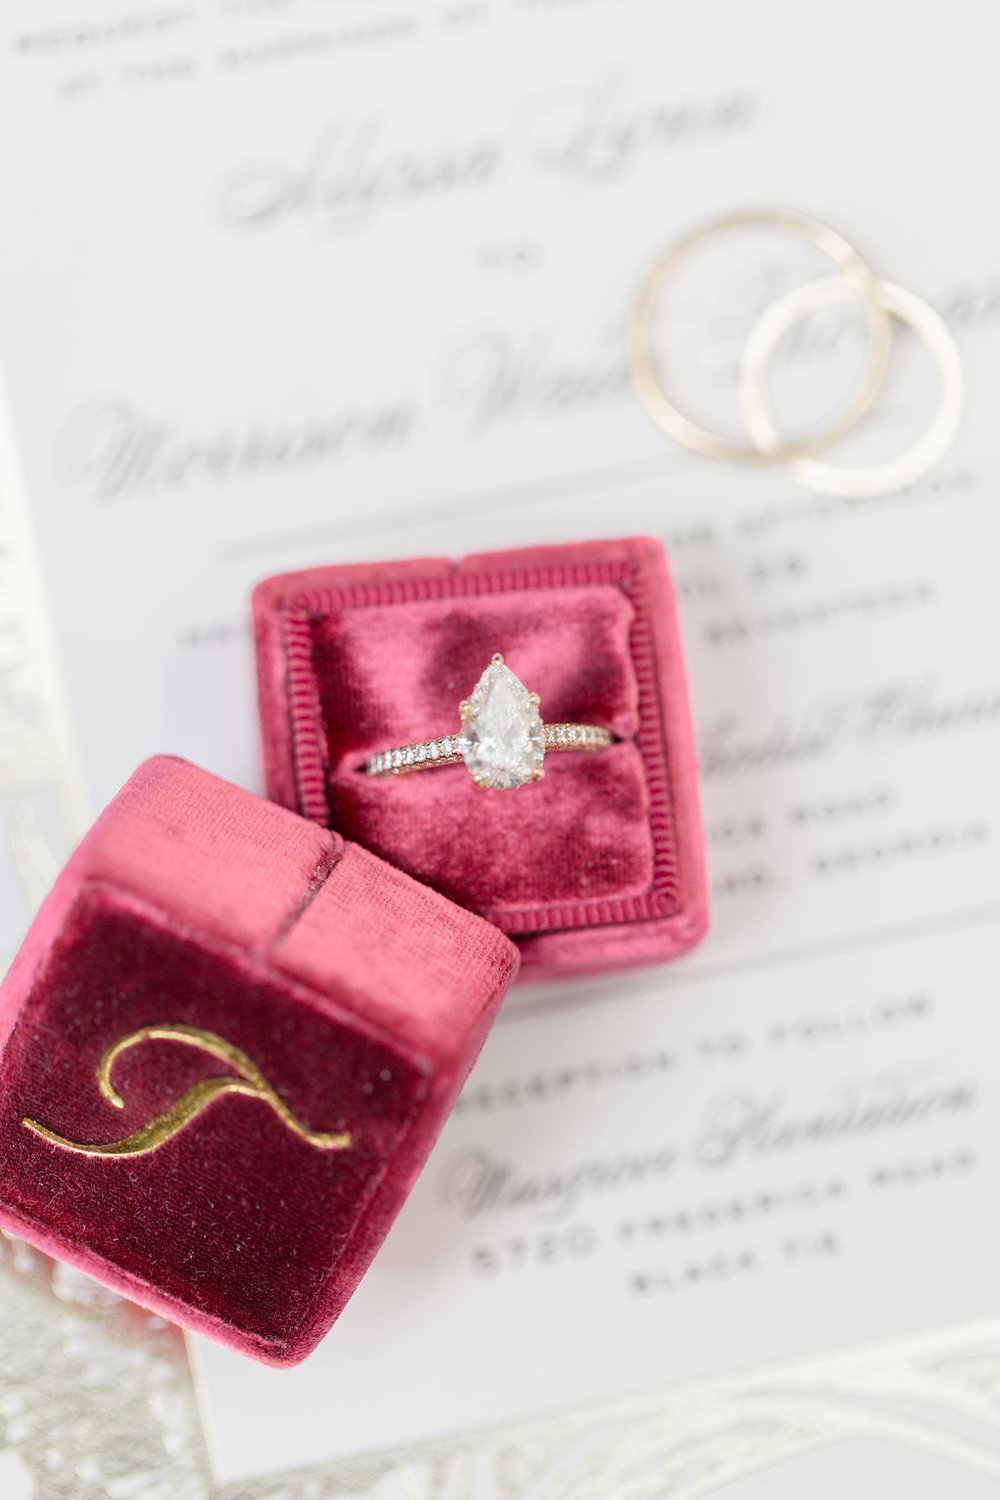 Pear Shaped Engagement Ring - Musgrove Plantation Georgia Wedding Venue